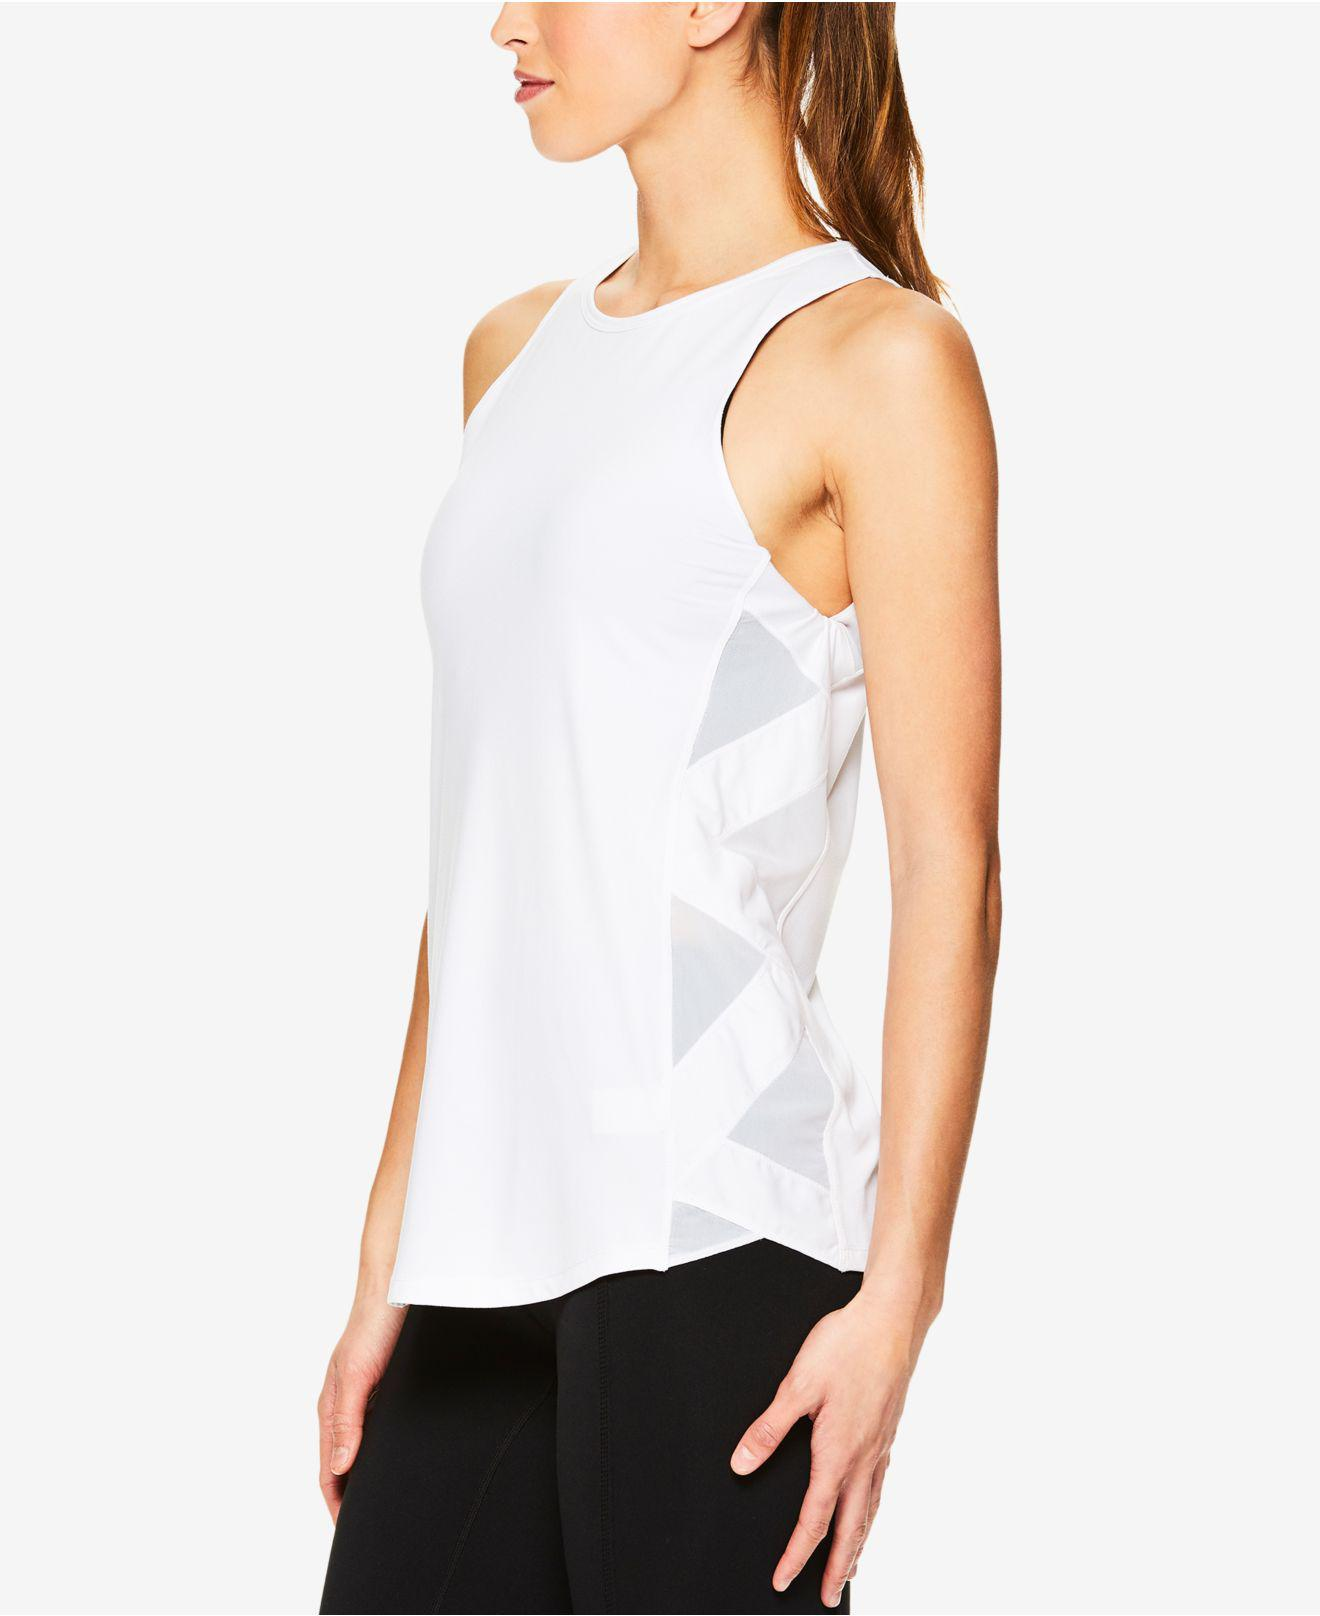 2dfca77fb0 Lyst - Gaiam Bailey Mesh-trimmed Tank Top in White